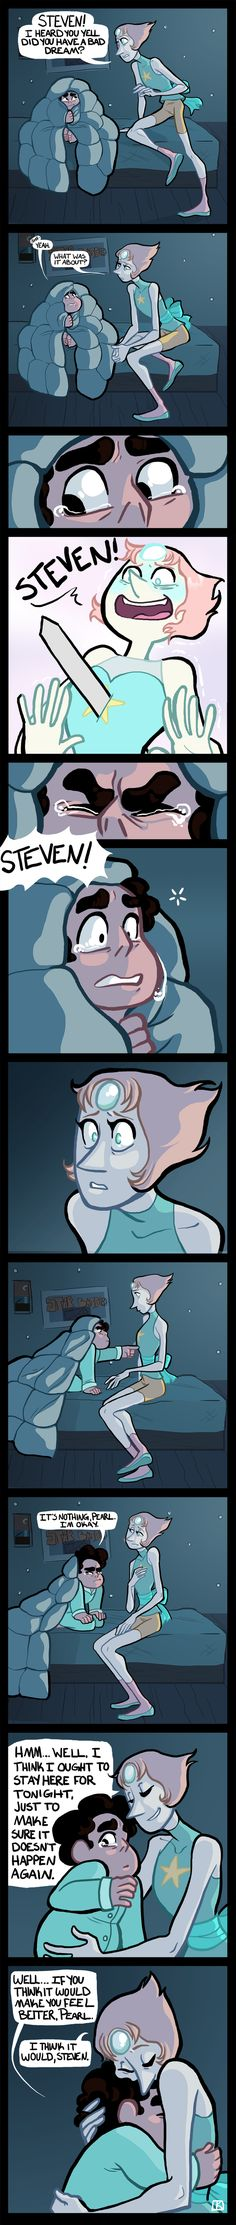 "This is why I watch this show. You're all like ""aww it's just a silly kids show about a magic boy."" And then WHHHHHHUUUUUUM! Right in the feels.  SU: Bad Dream by ArtKat.deviantart.com on @DeviantArt"